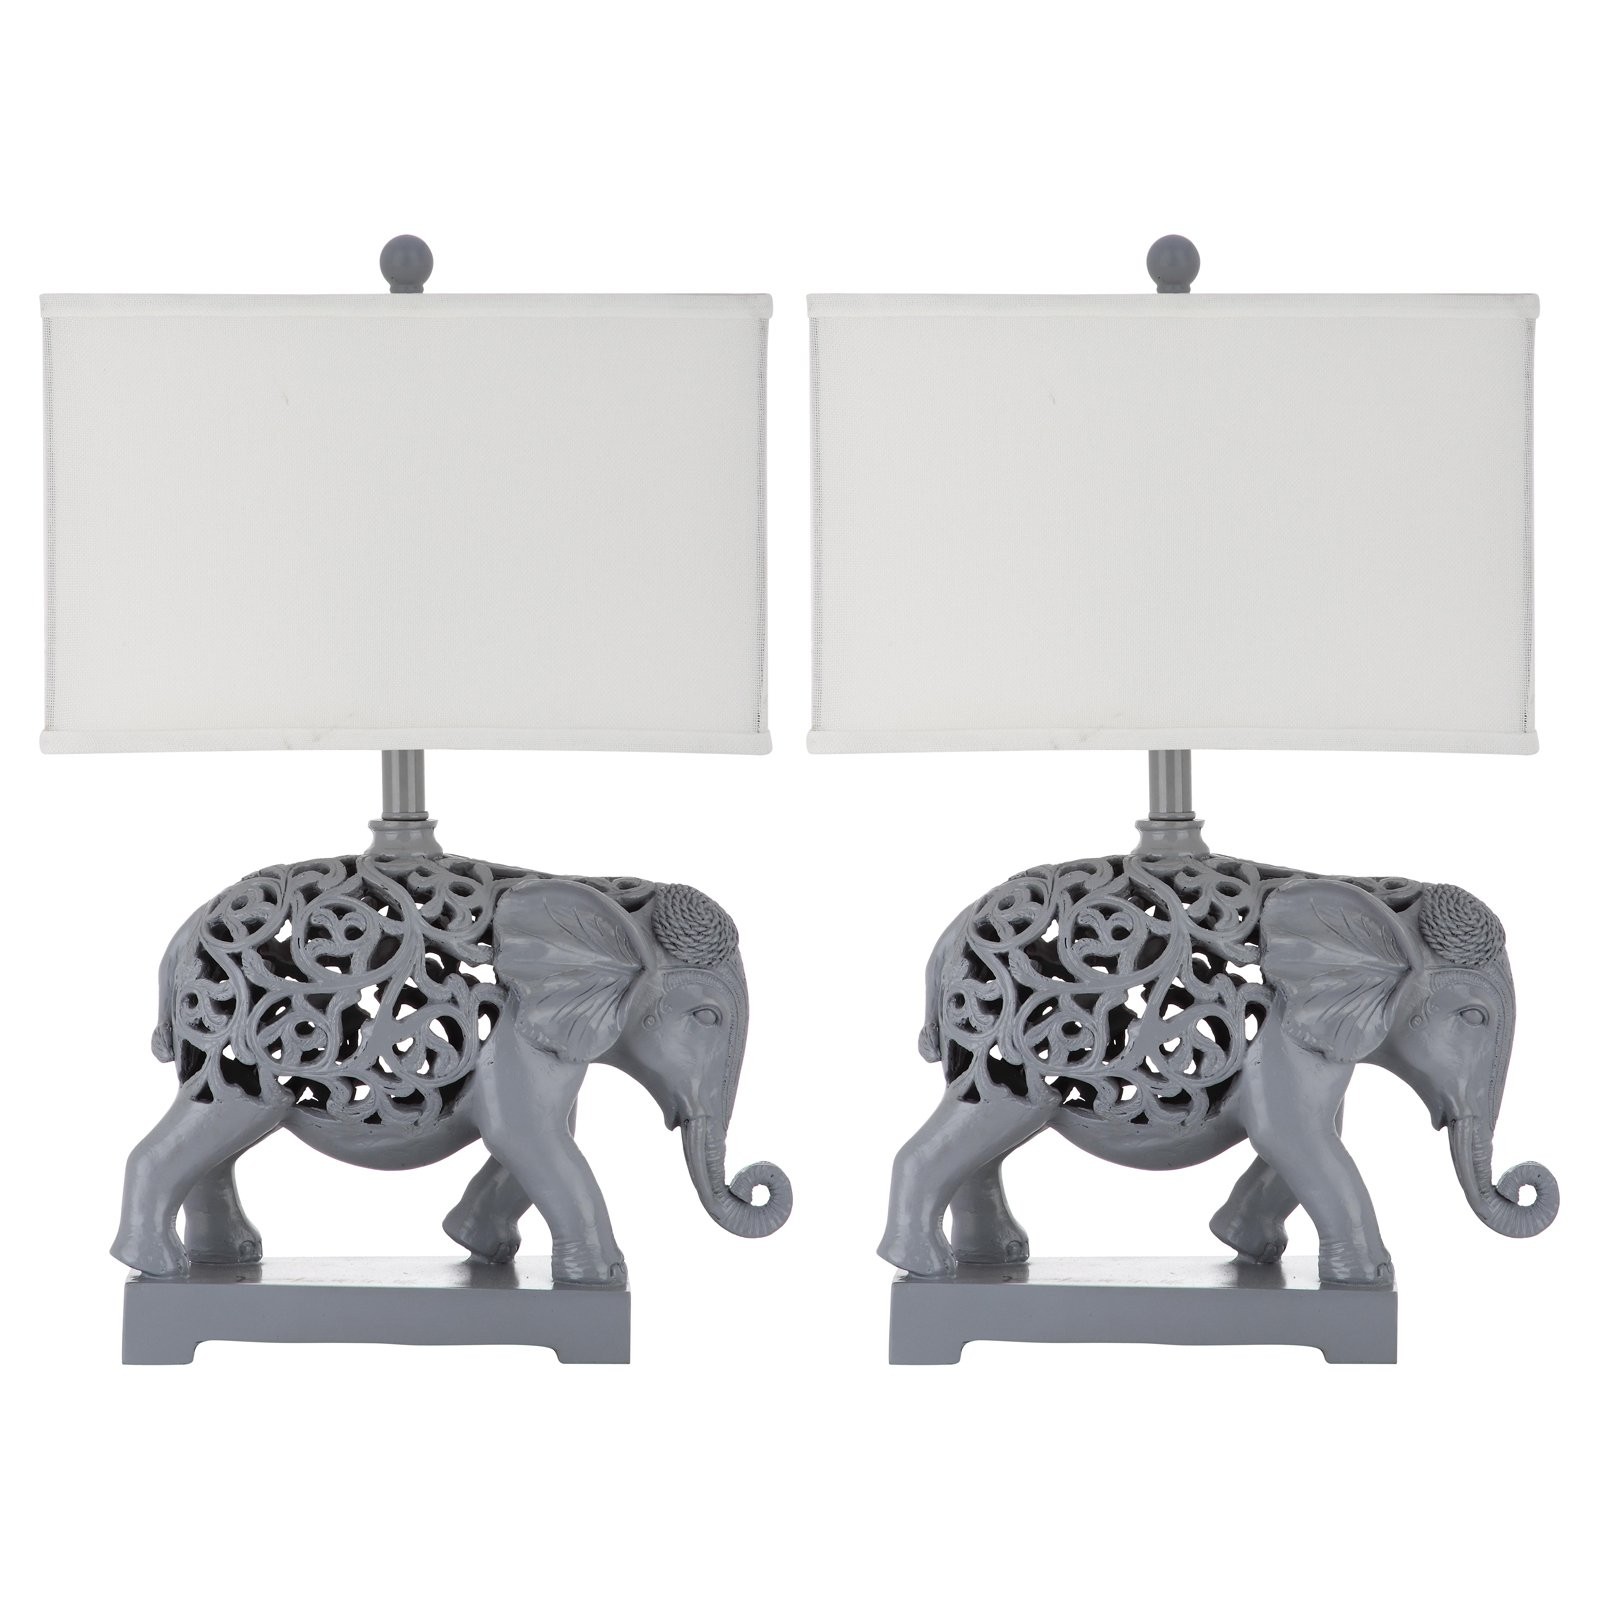 Safavieh Hathi Sculpture Table Lamp with CFL Bulb, Light Grey with Off-White Shade, Set of 2